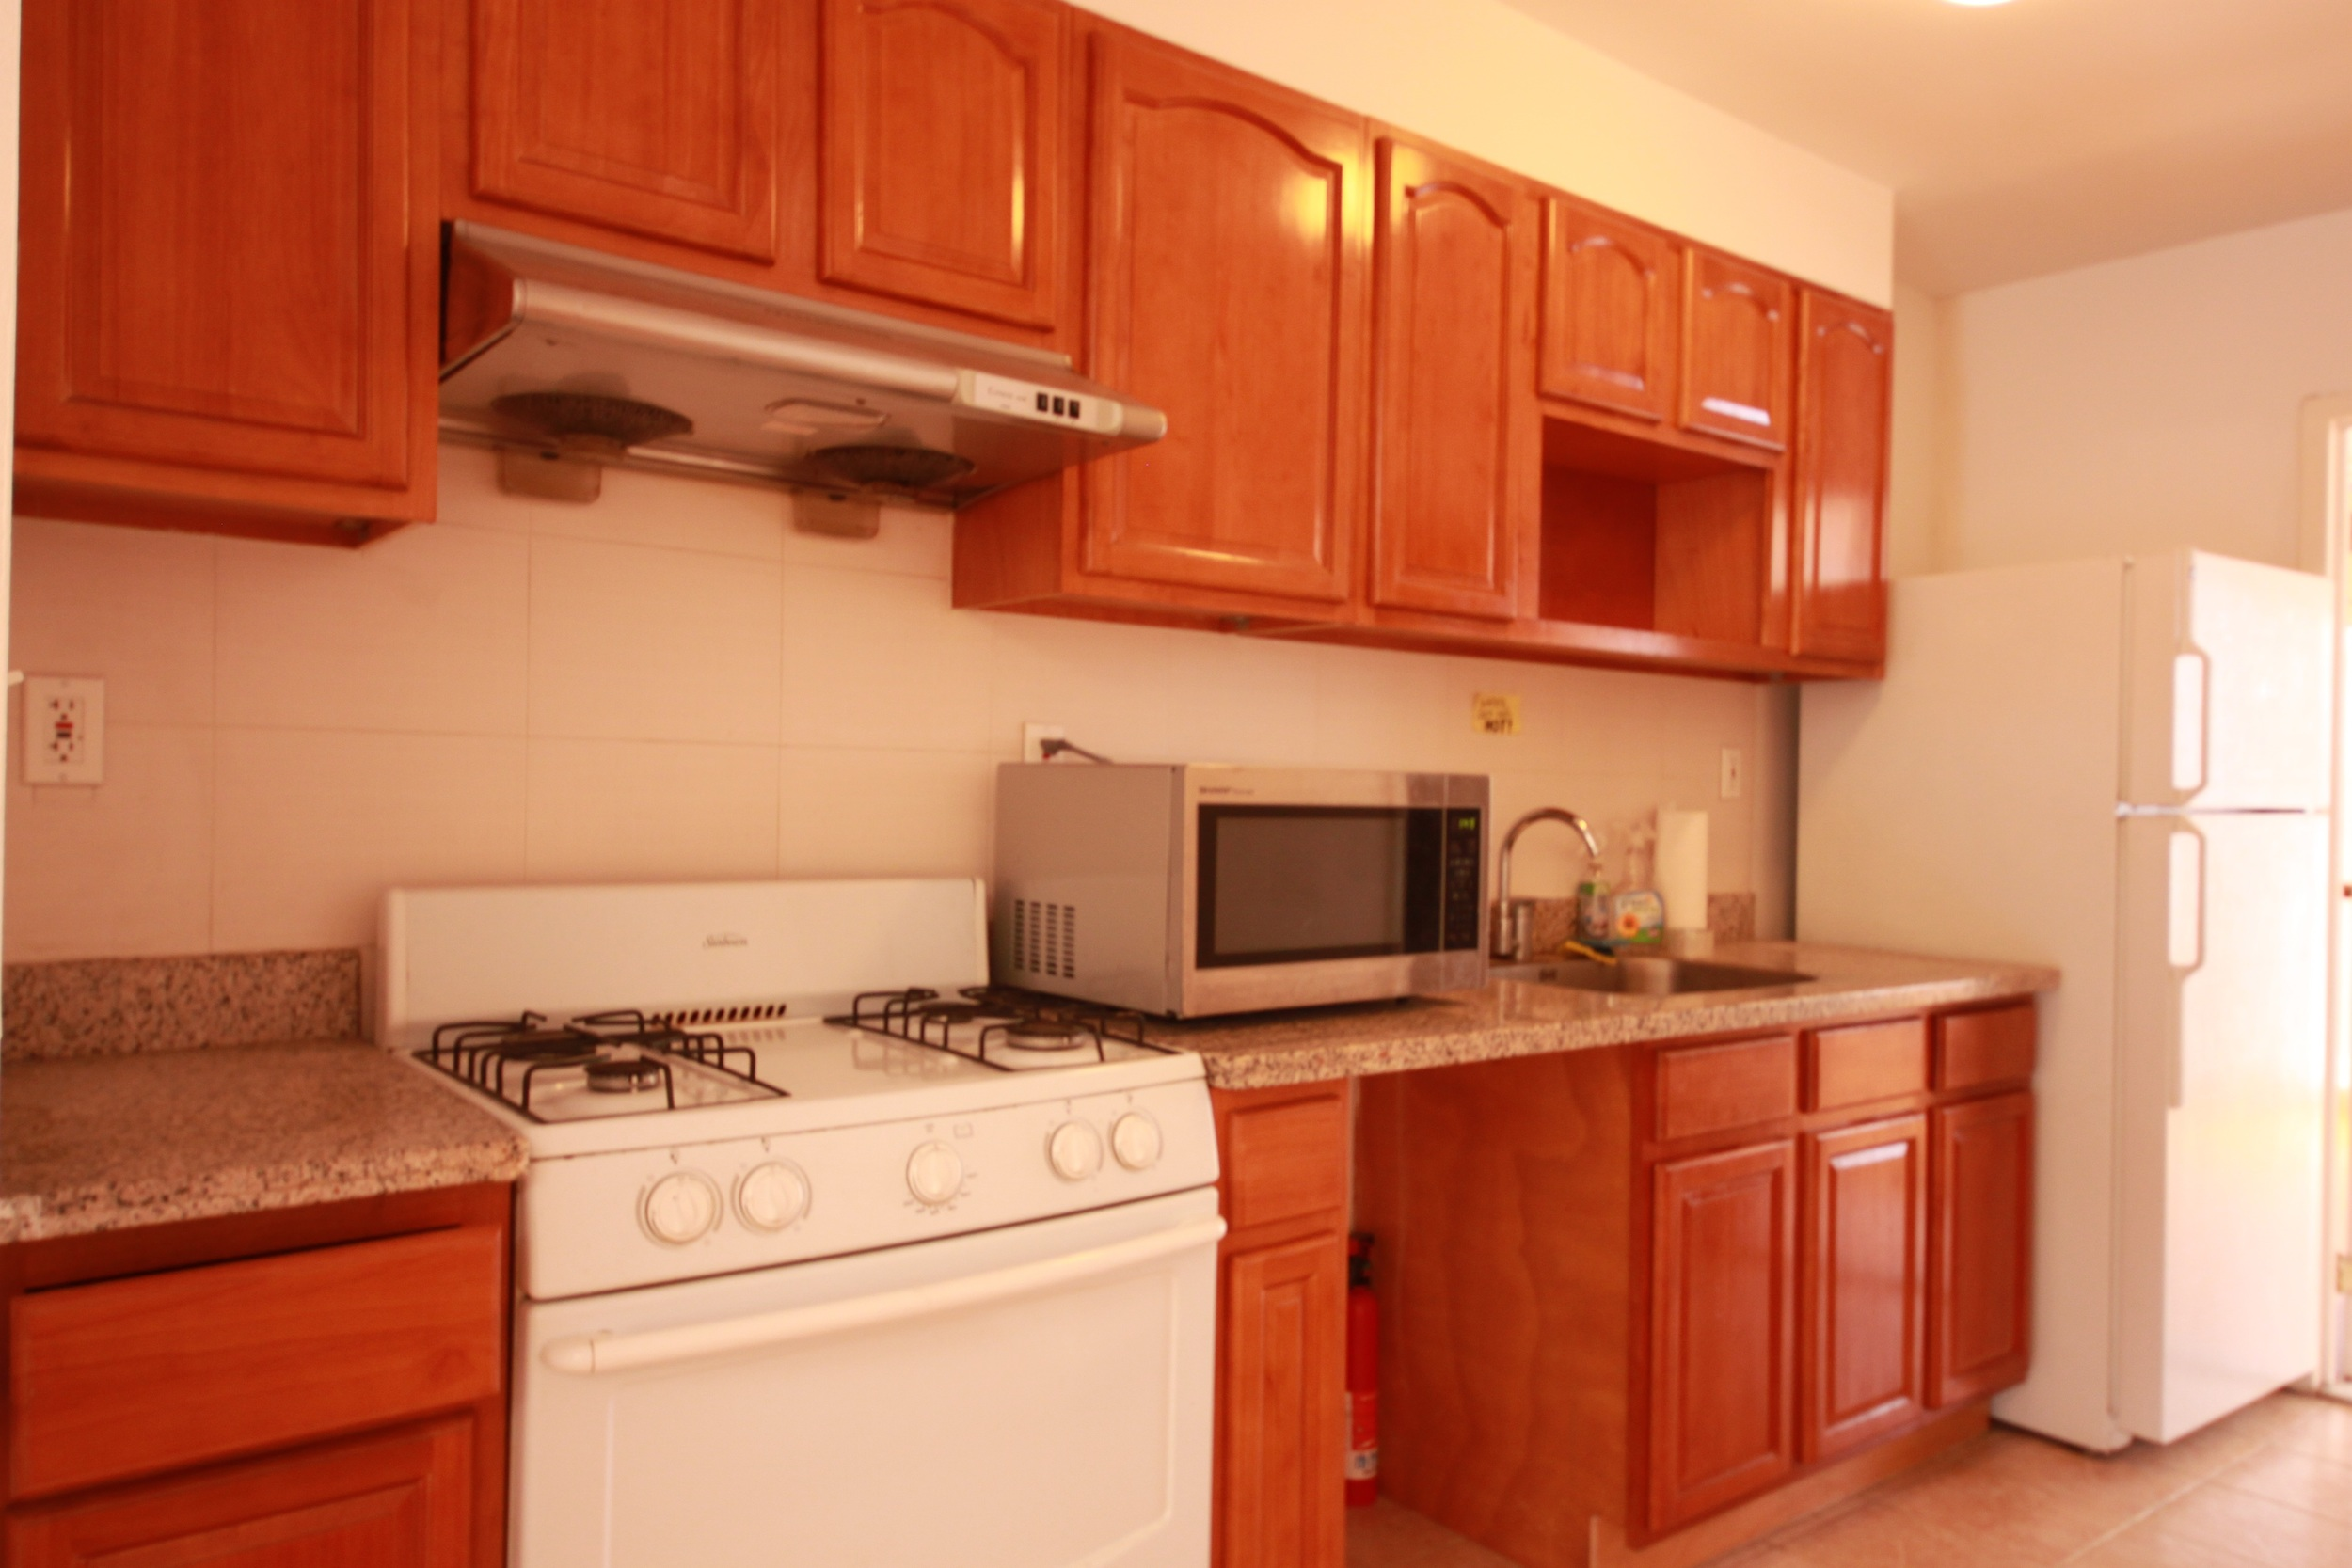 Kitchen layout for 3rd floor units only